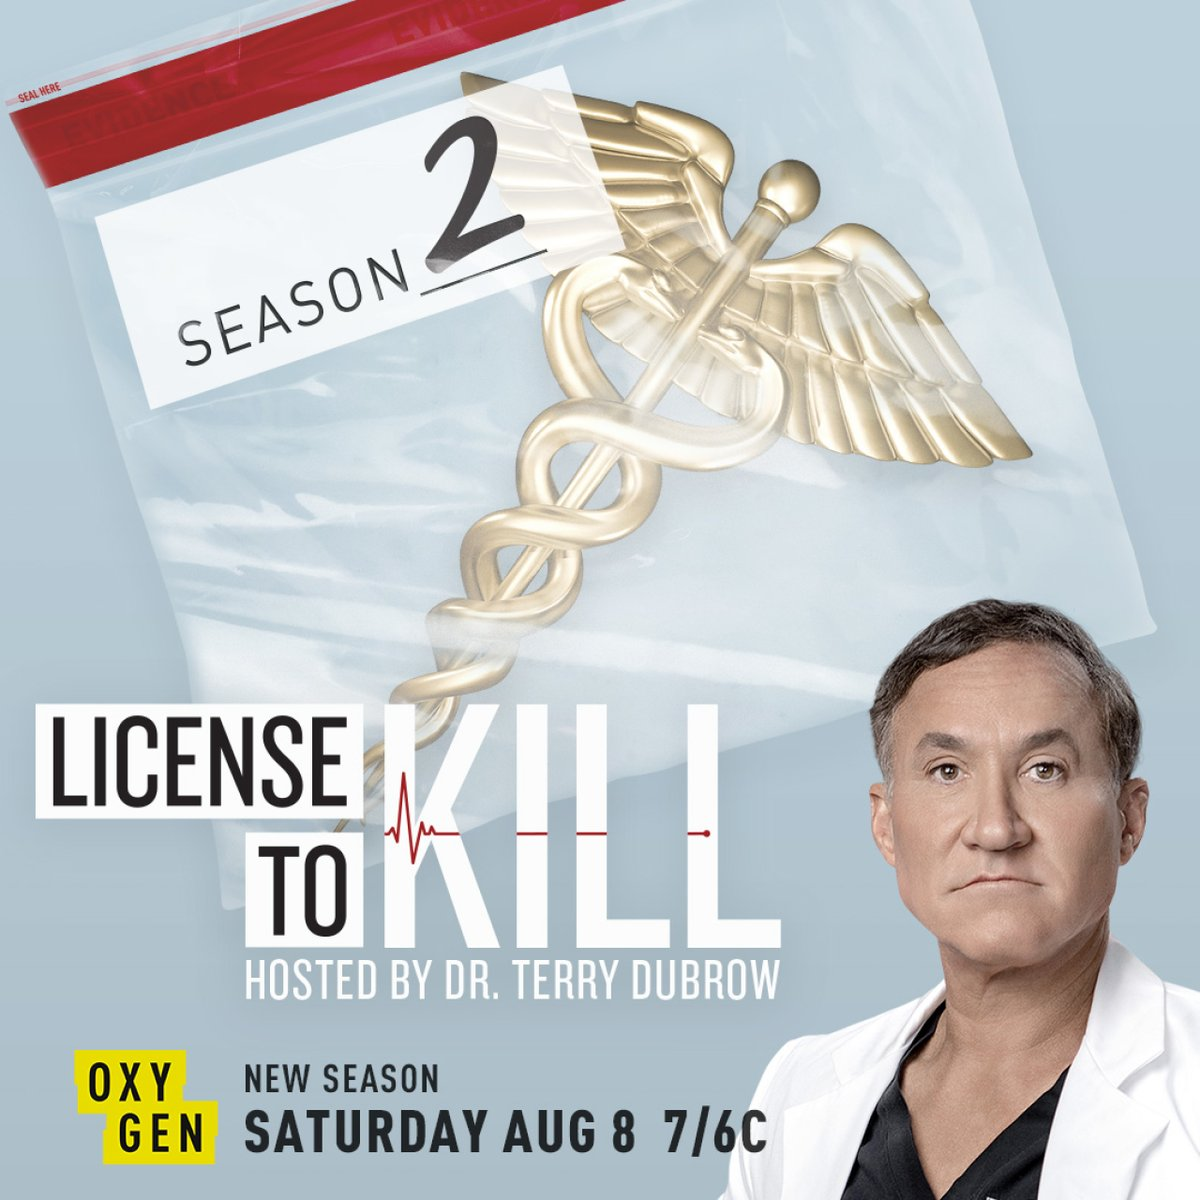 #LicenseToKill is BACK this summer with all-new episodes! Don't miss the premiere Saturday, August 8 at 7/6c, only on @Oxygen.